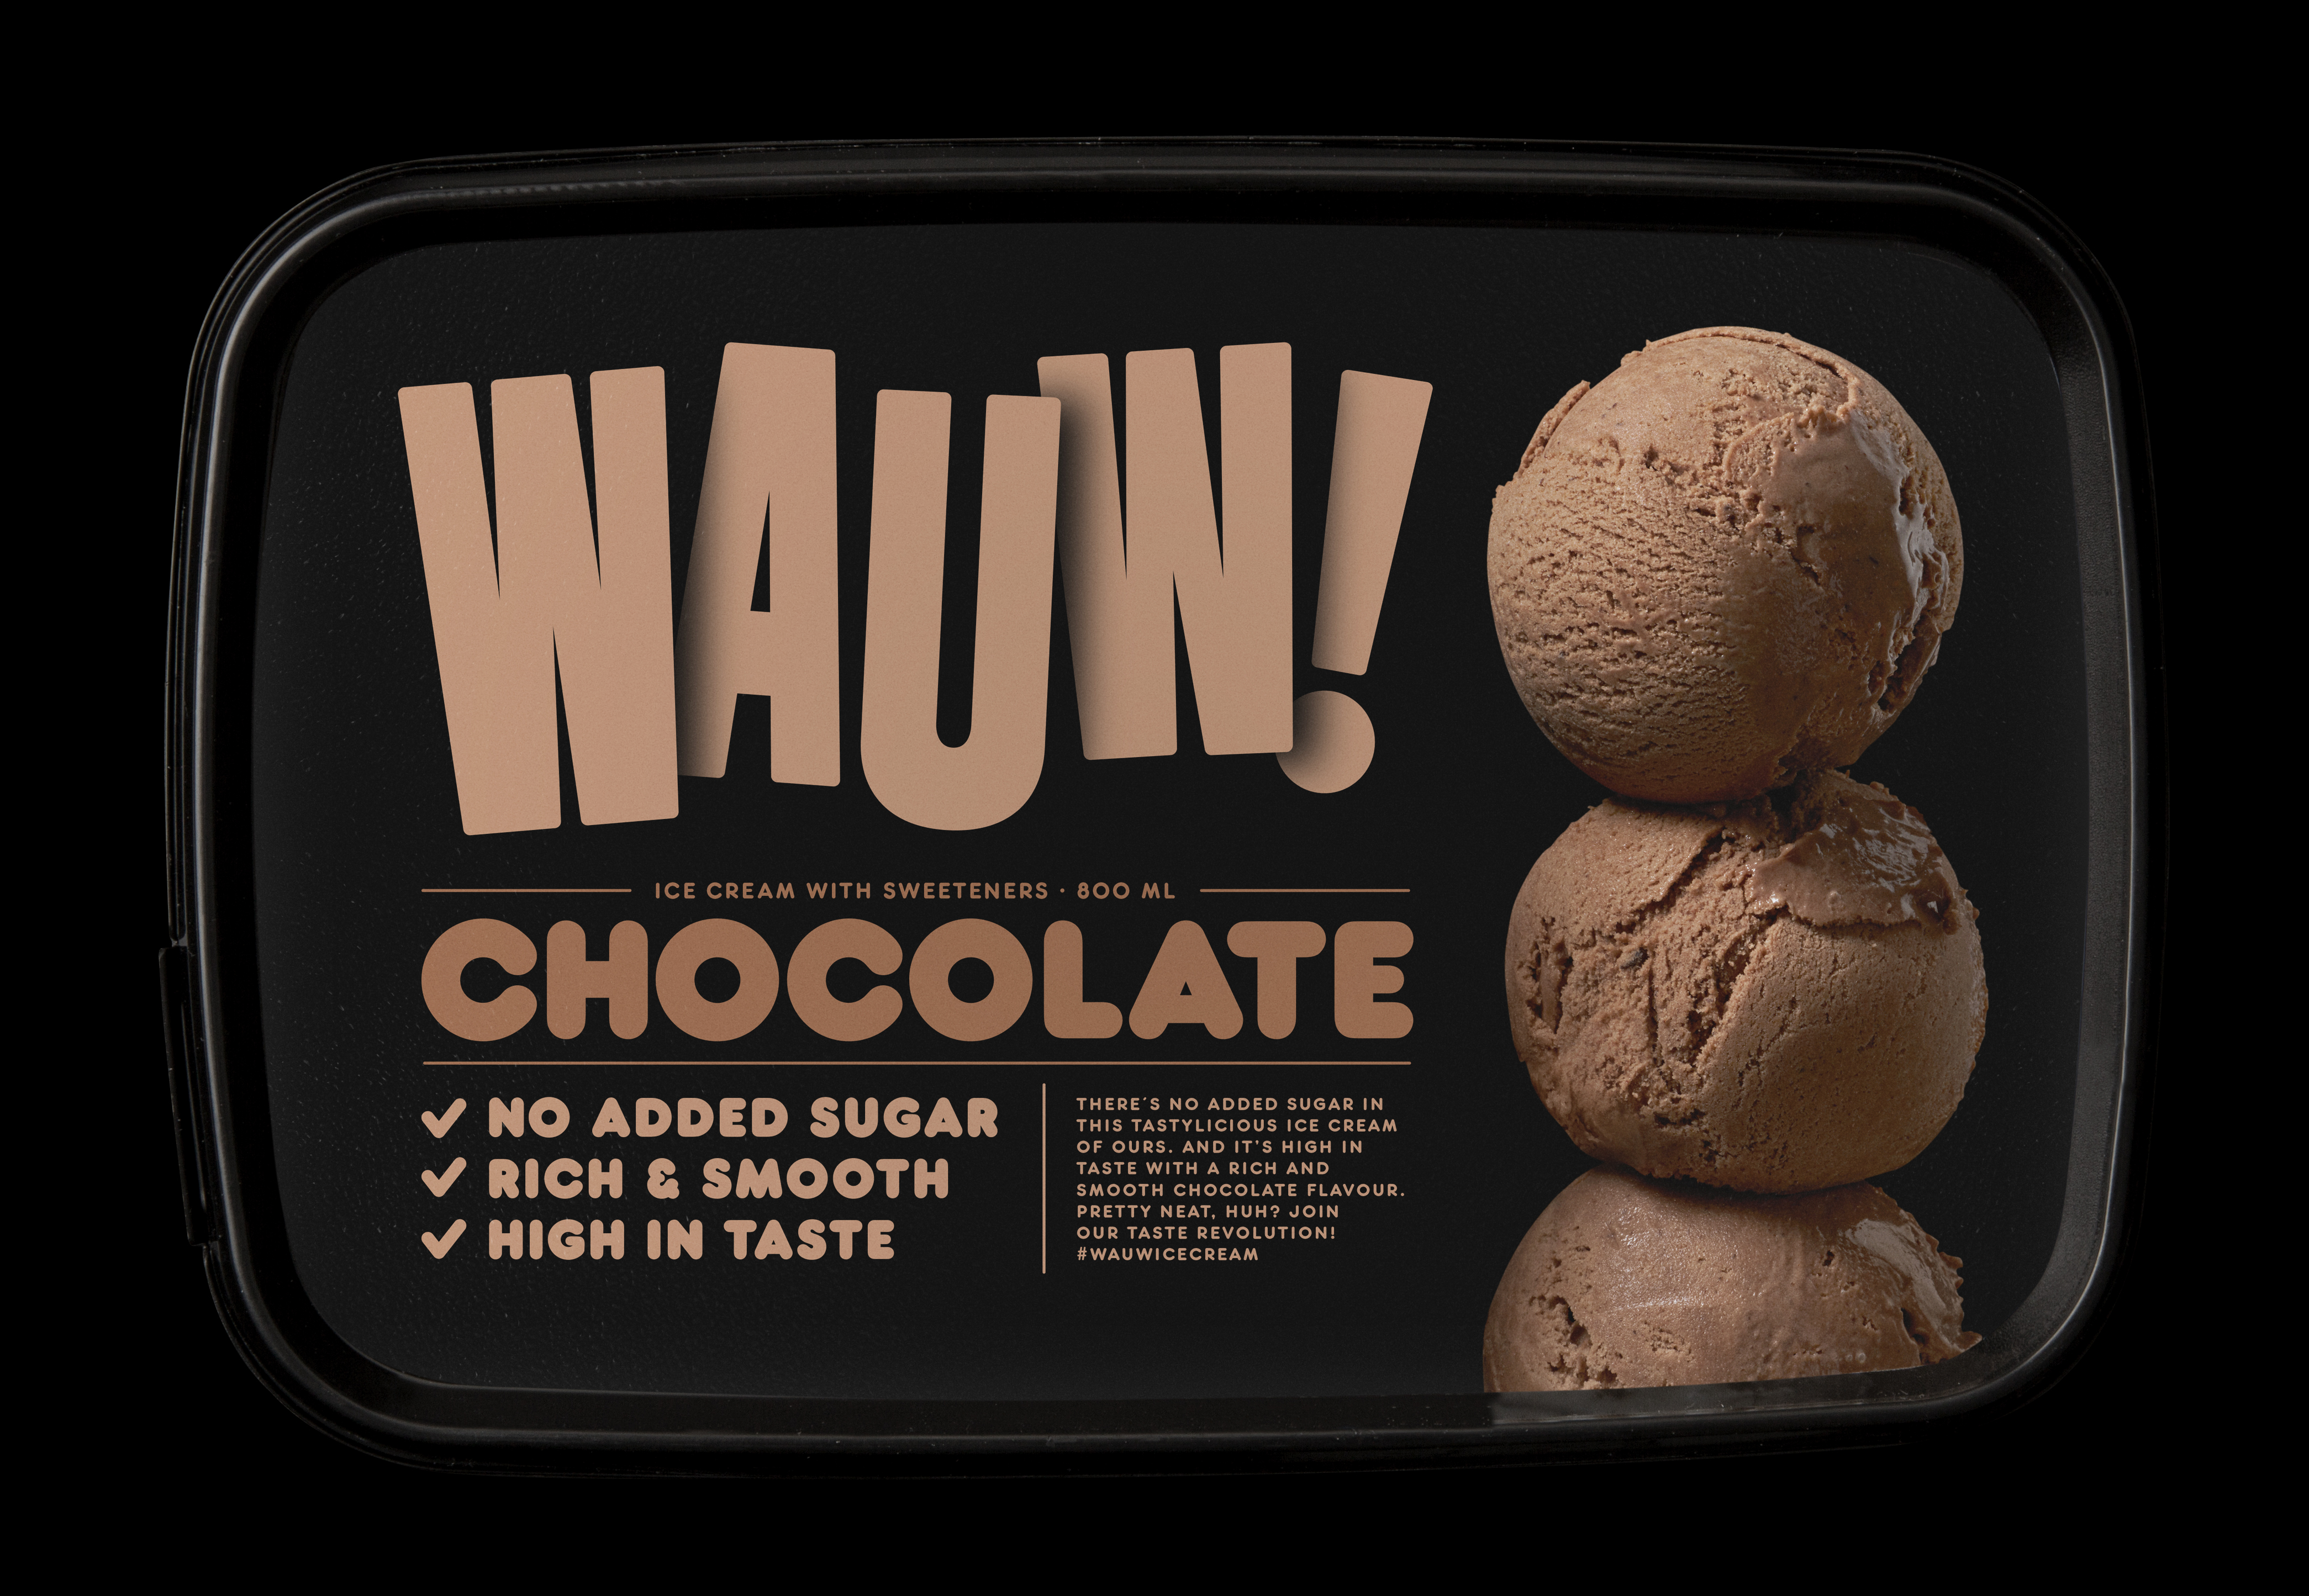 wauw_packaging-photo_top_chocolate